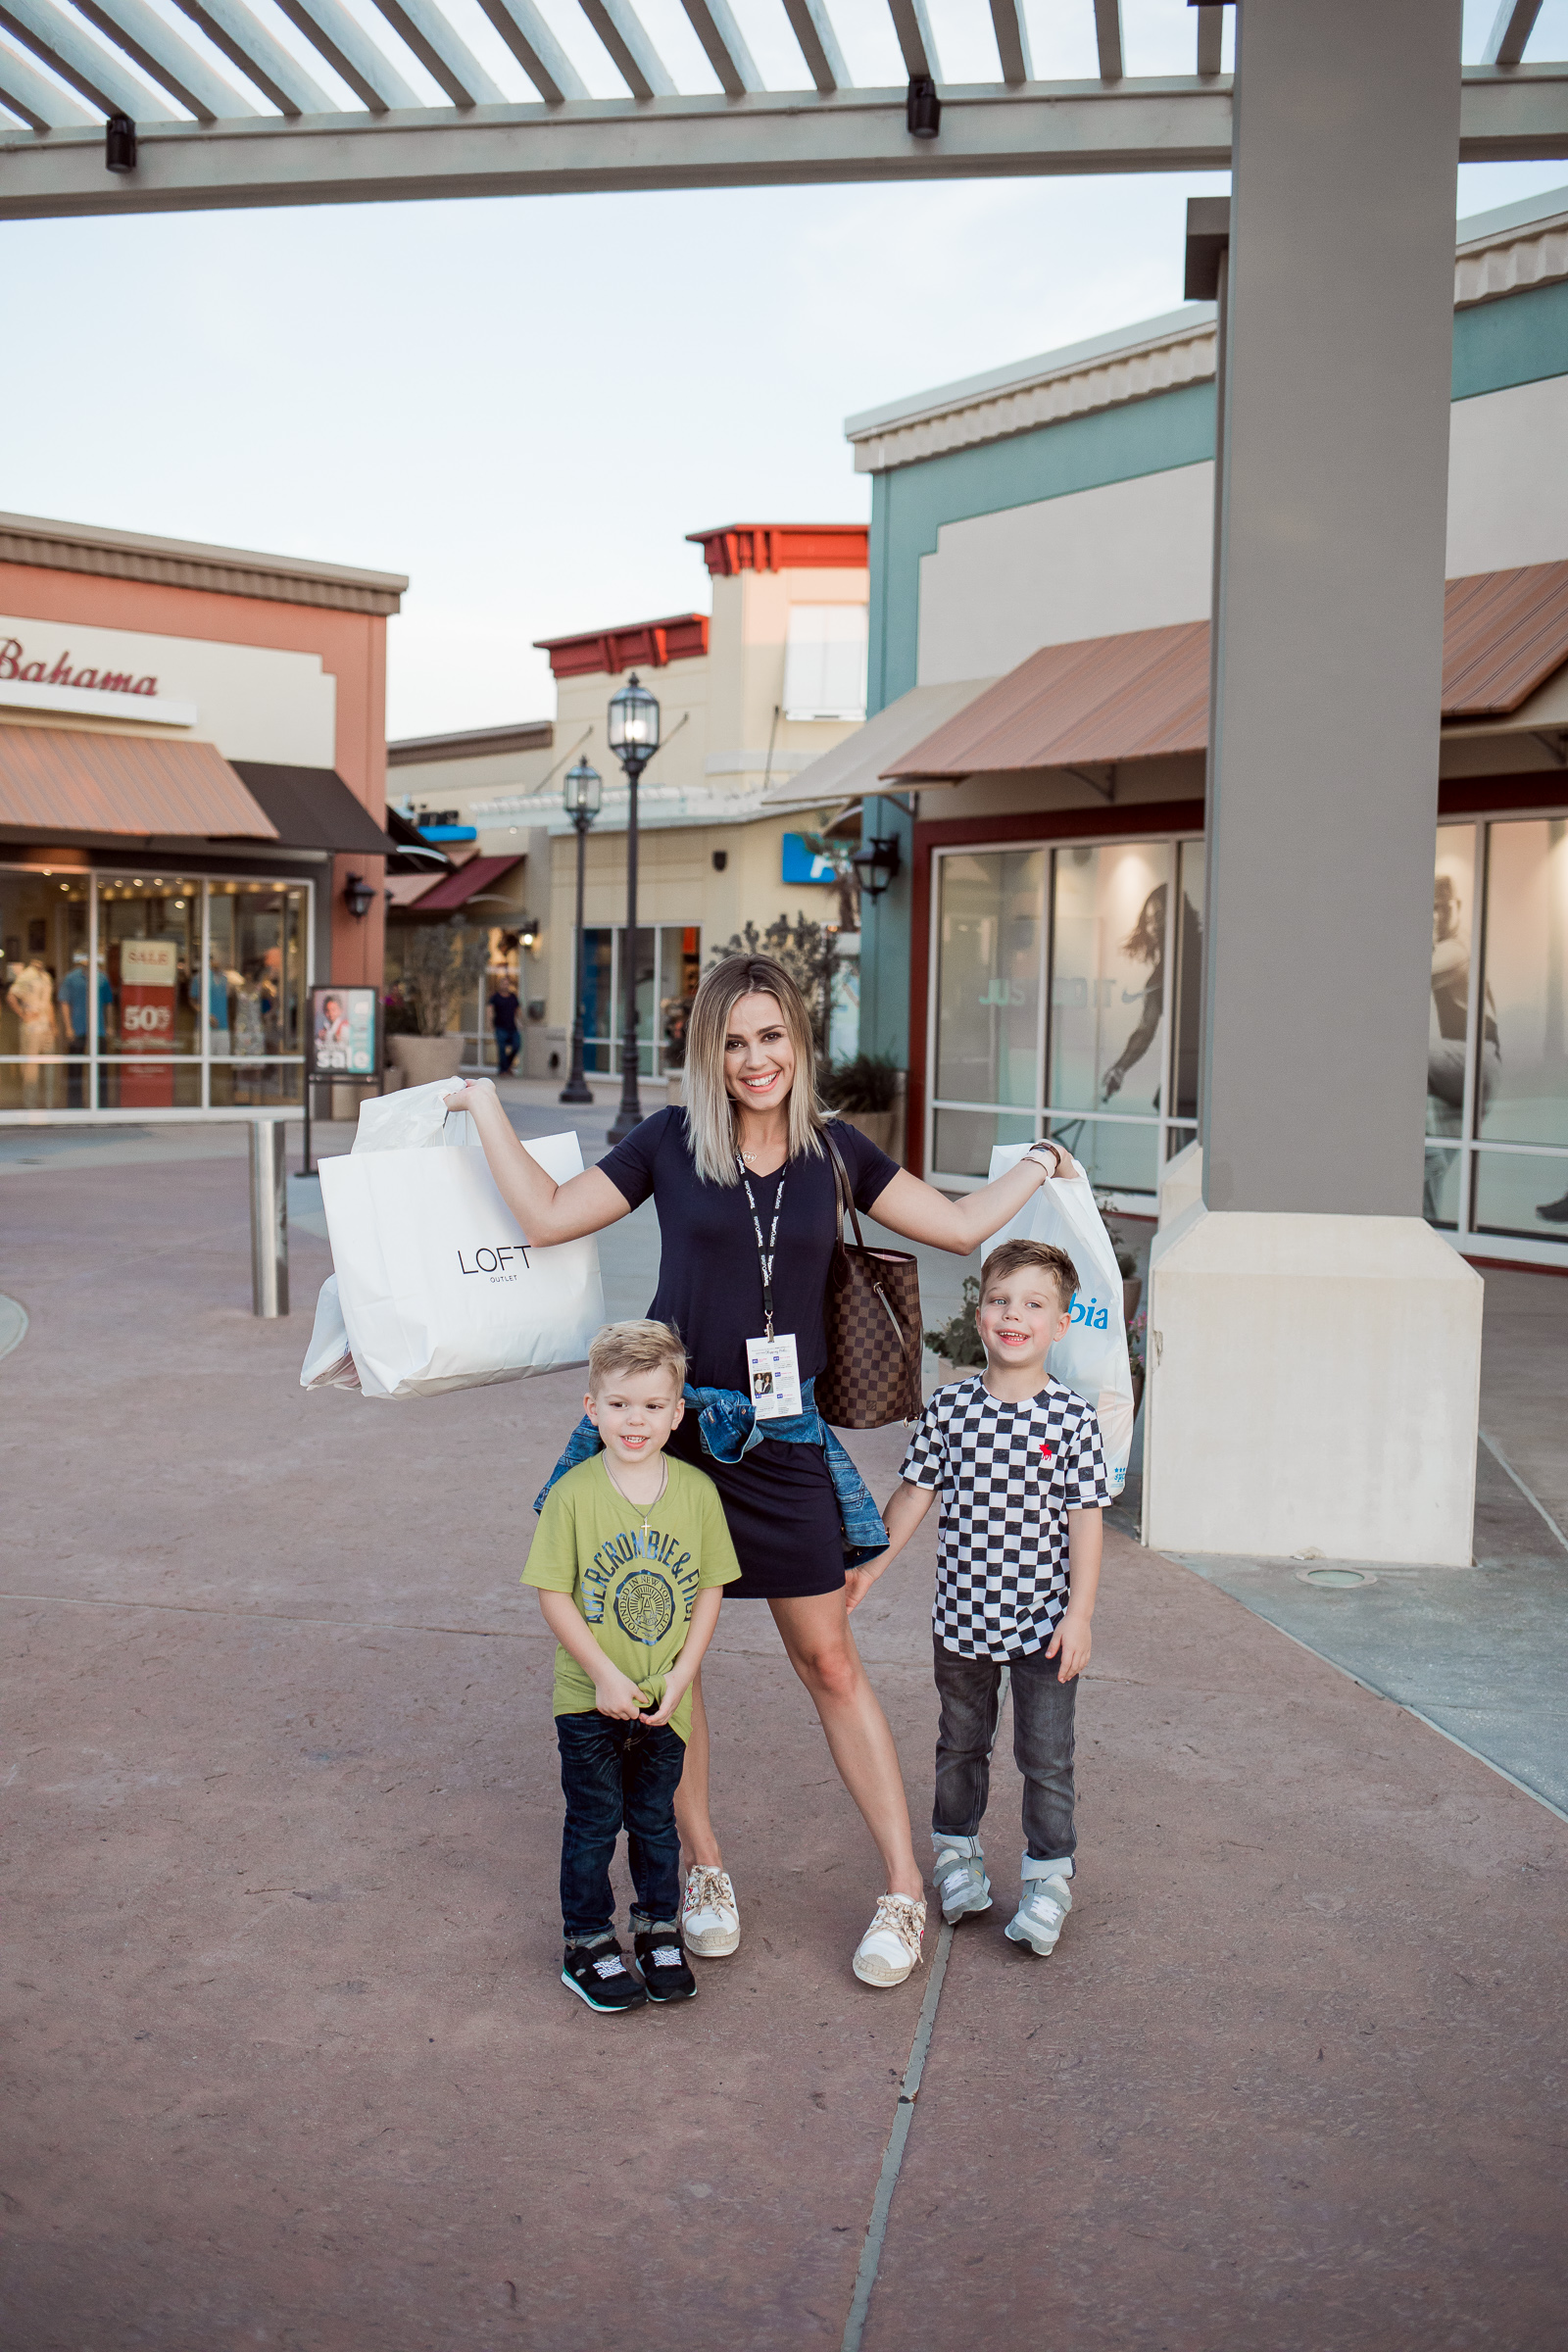 Houston Fashion blogger Uptown with Elly Brown shares how to make Outlet Shopping easy for the whole family, and how to score the best deals.